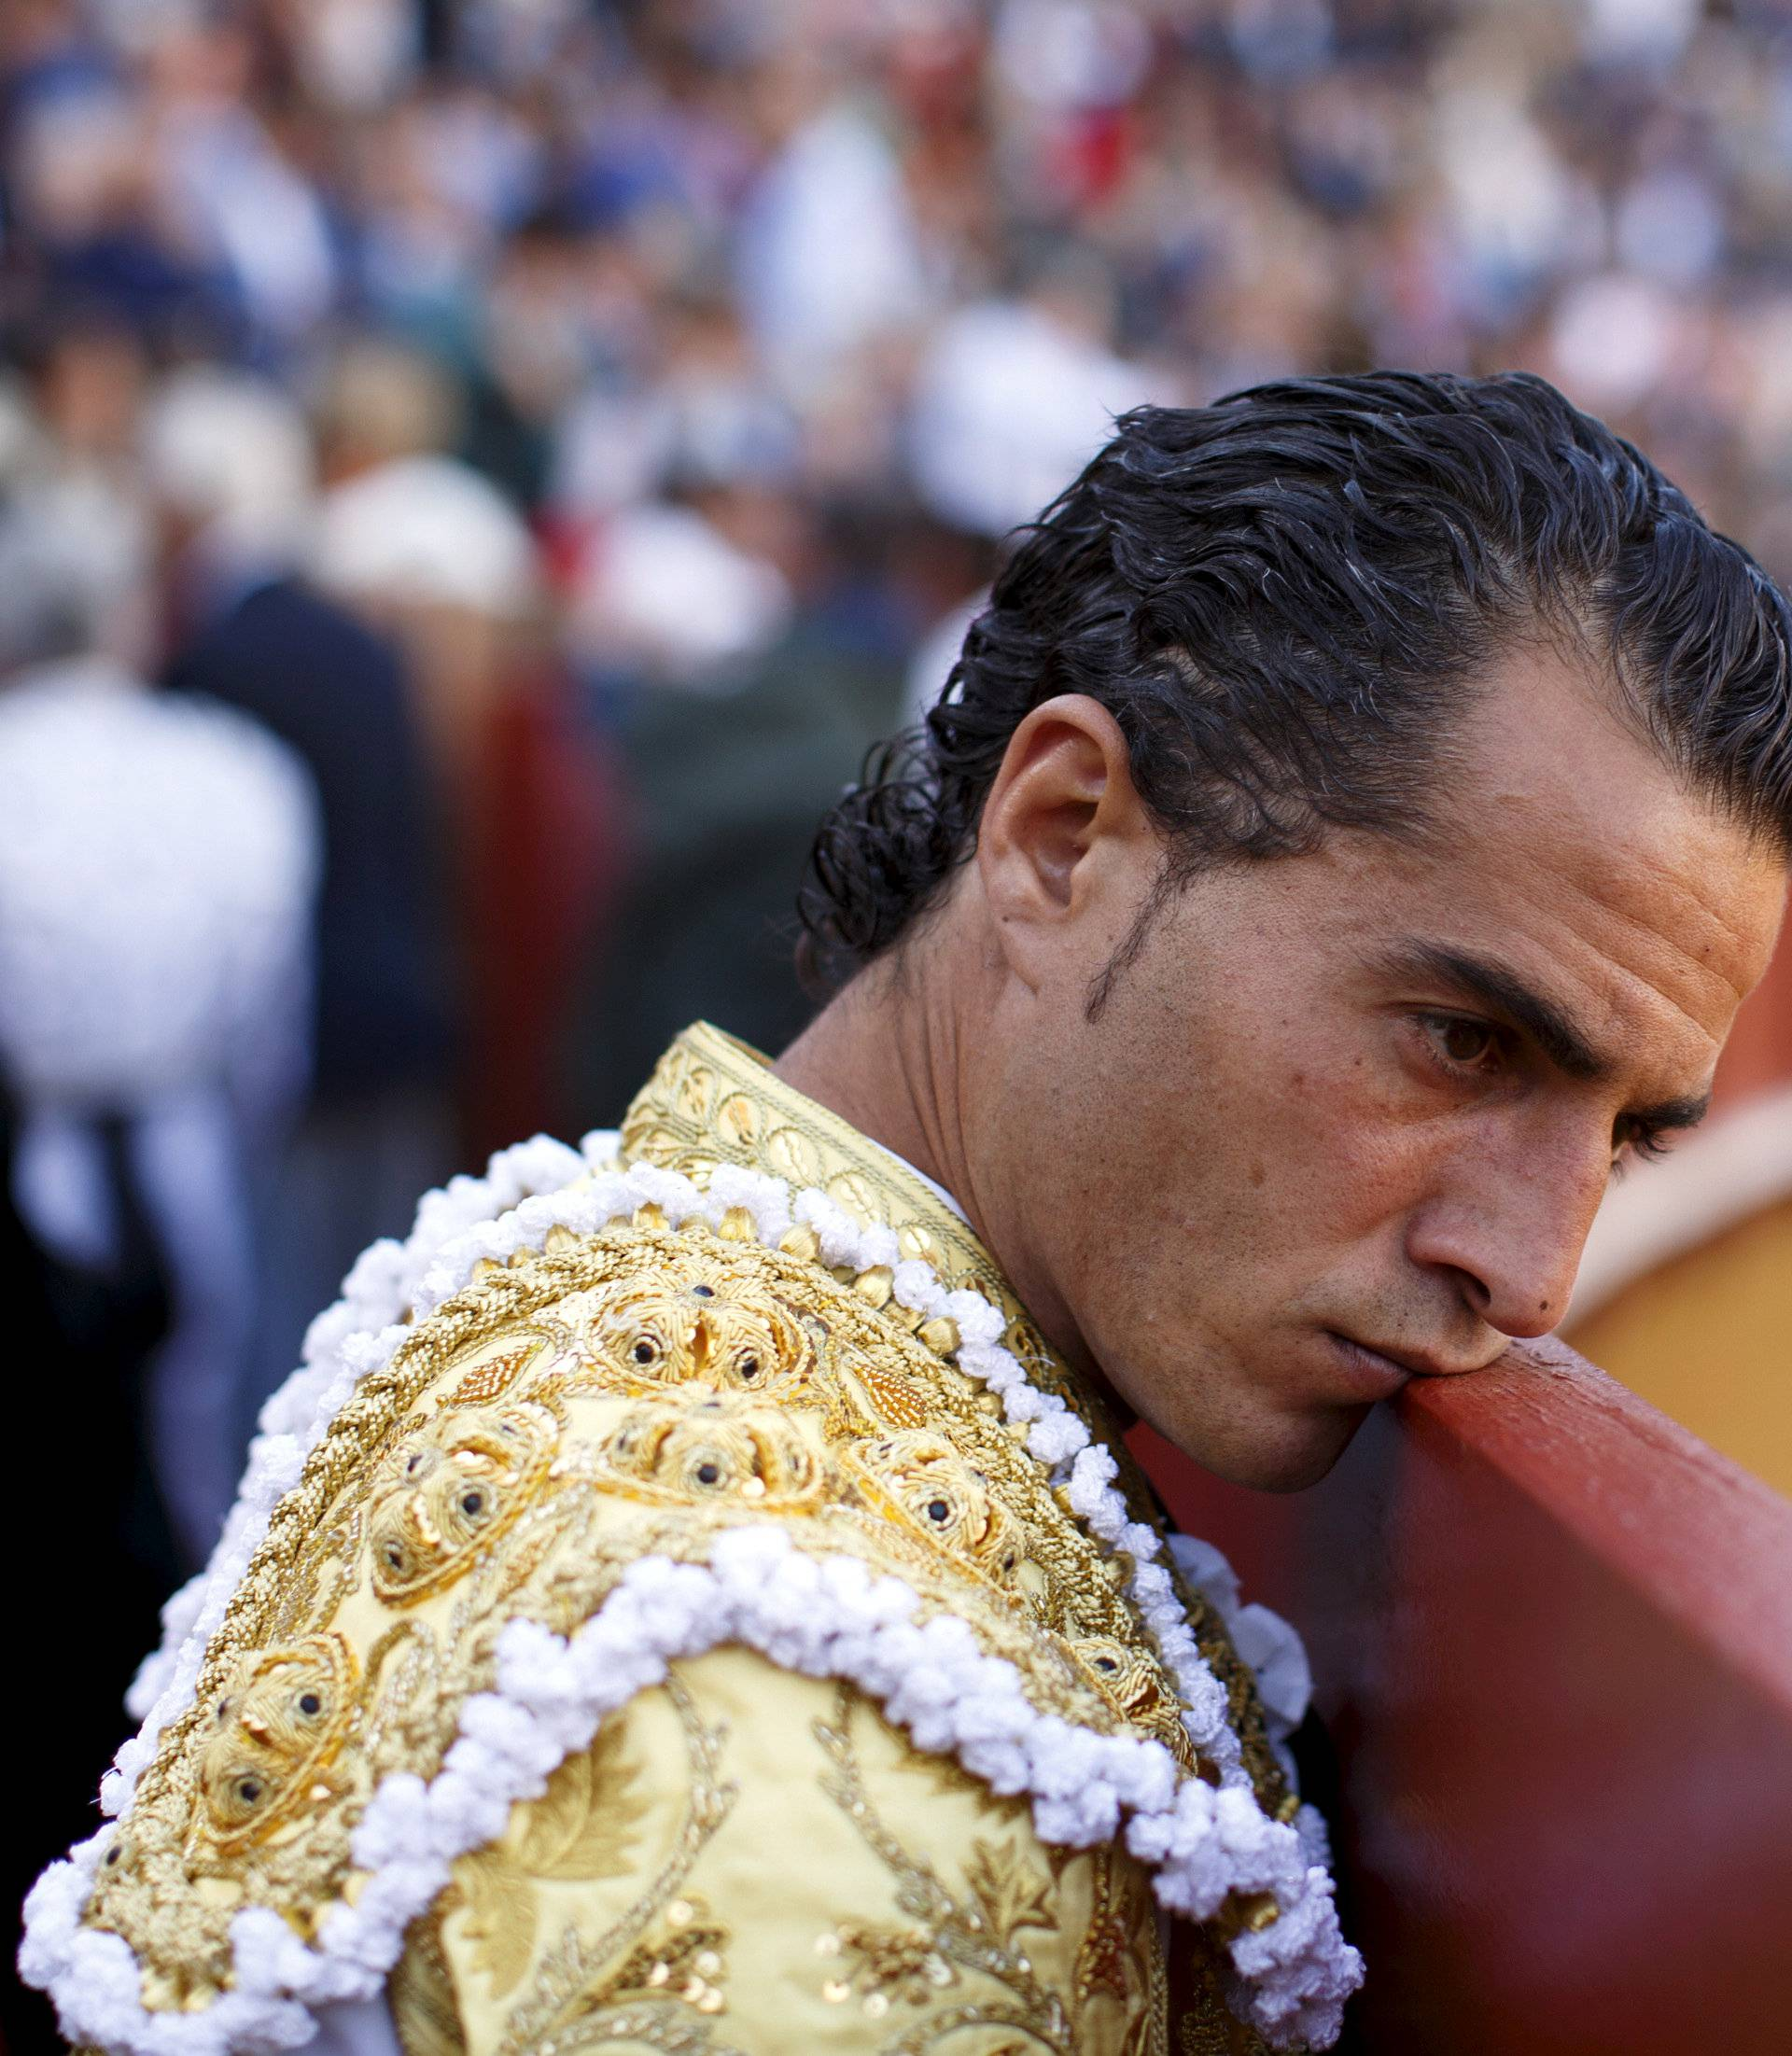 FILE PHOTO: Spanish matador Ivan Fandino leans his face on the barrier during a bullfight at the Maestranza bullring in the Andalusian capital of Seville